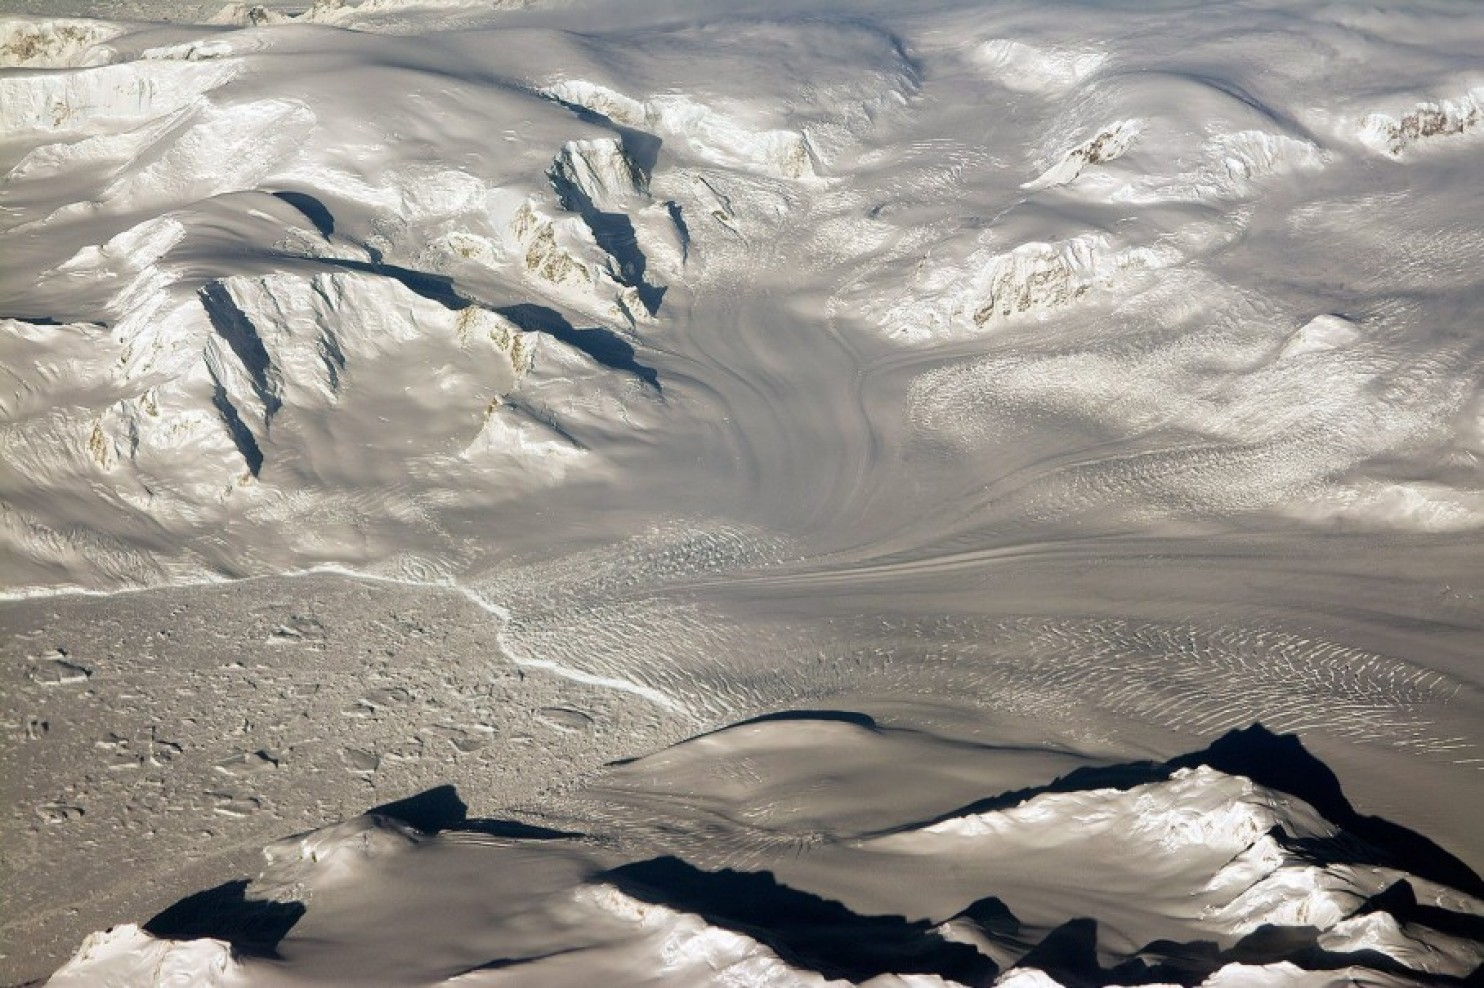 A handout photograph provided by NASA shows glaciers and mountains in the evening sun during an Operation IceBridge research flight, returning from West Antarctica, 29 October 2014. EPA/MICHAEL STUDINGER / HANDOUT